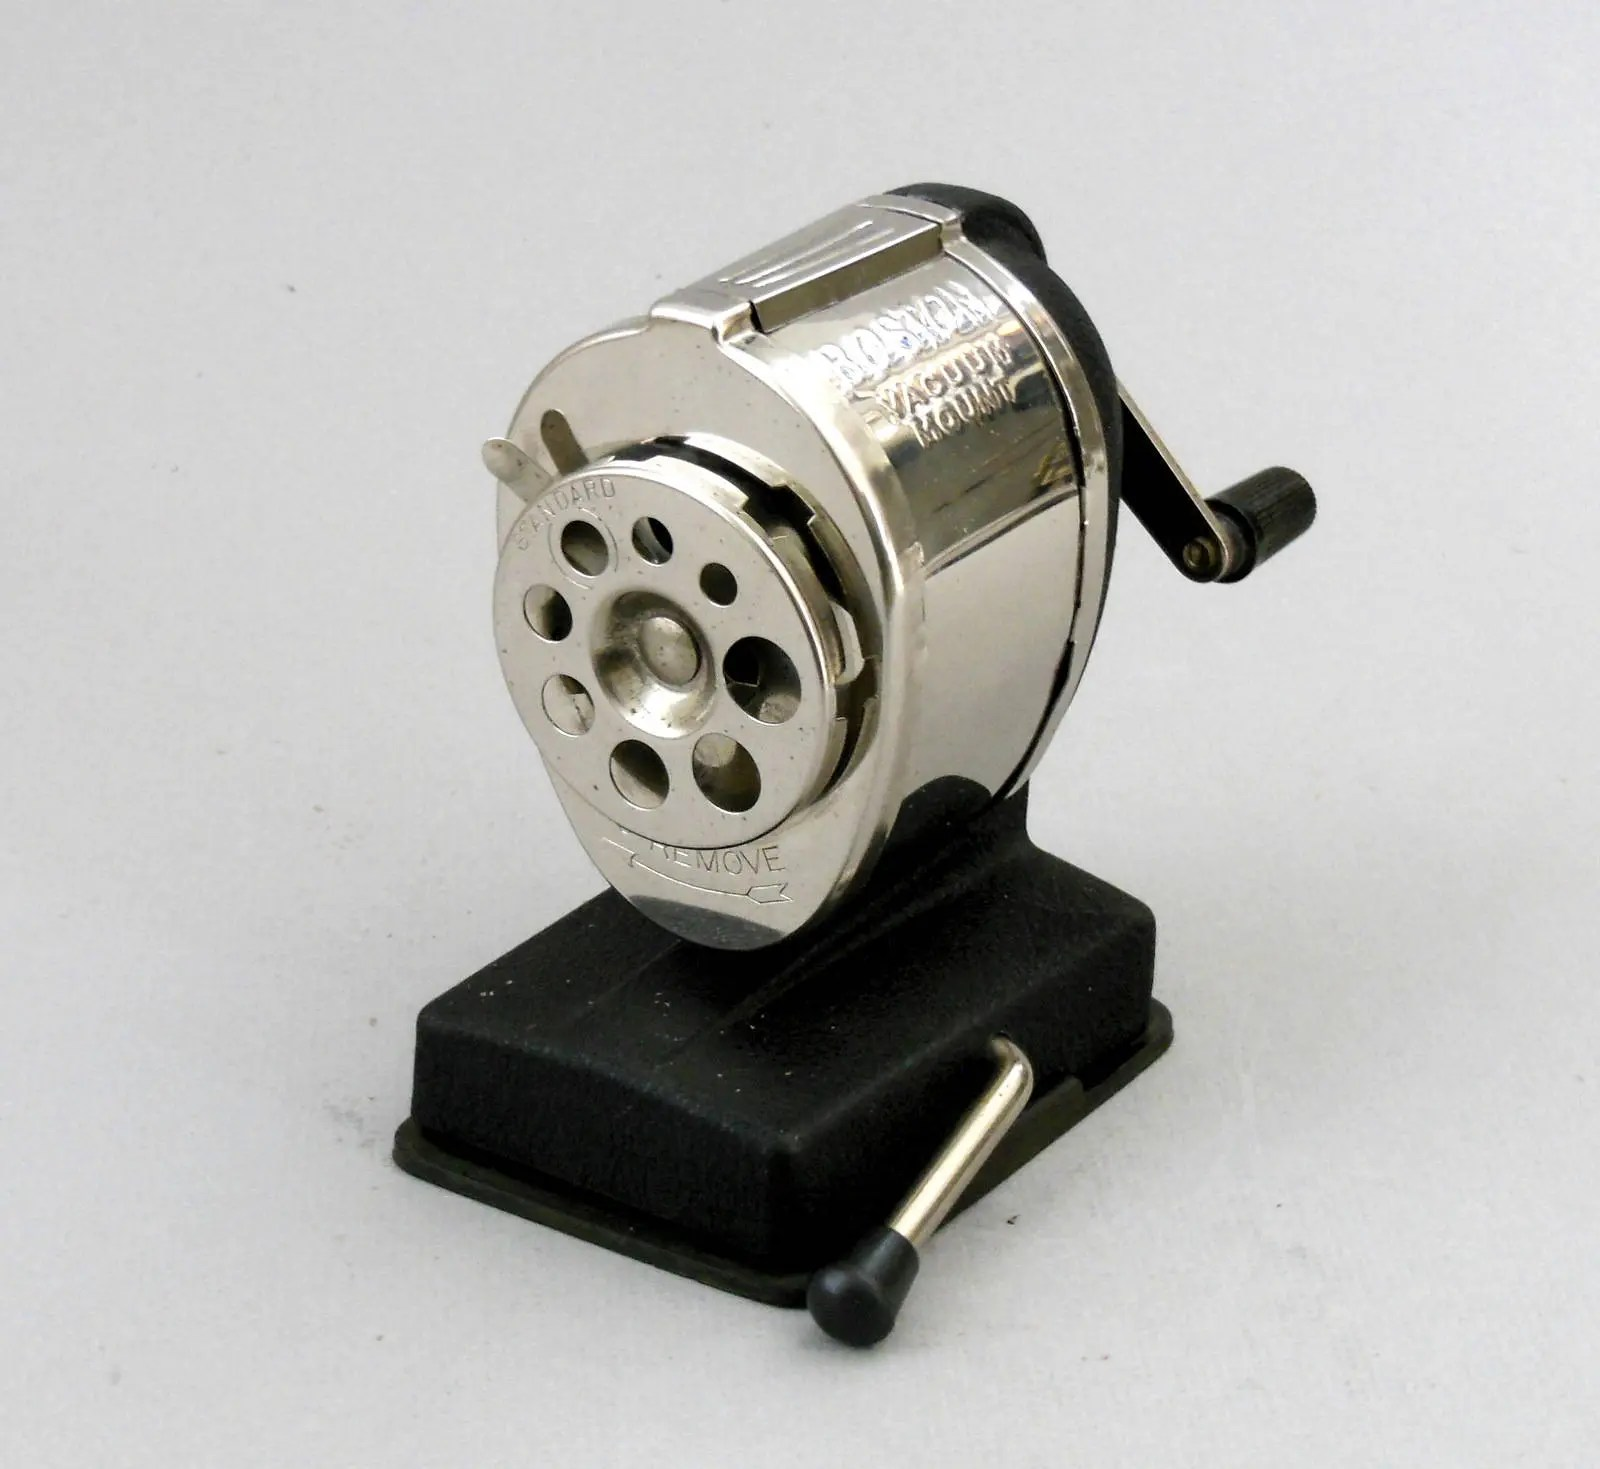 Aweinspiring Vintage Boston Vacuum Mount Metal Pencil Sharpener Heavy Duty Adjustablesizing Retro Made Usa Grey Satin Vintage Boston Vacuum Mount Metal Pencil Sharpener Heavy Duty houzz-02 Boston Pencil Sharpener